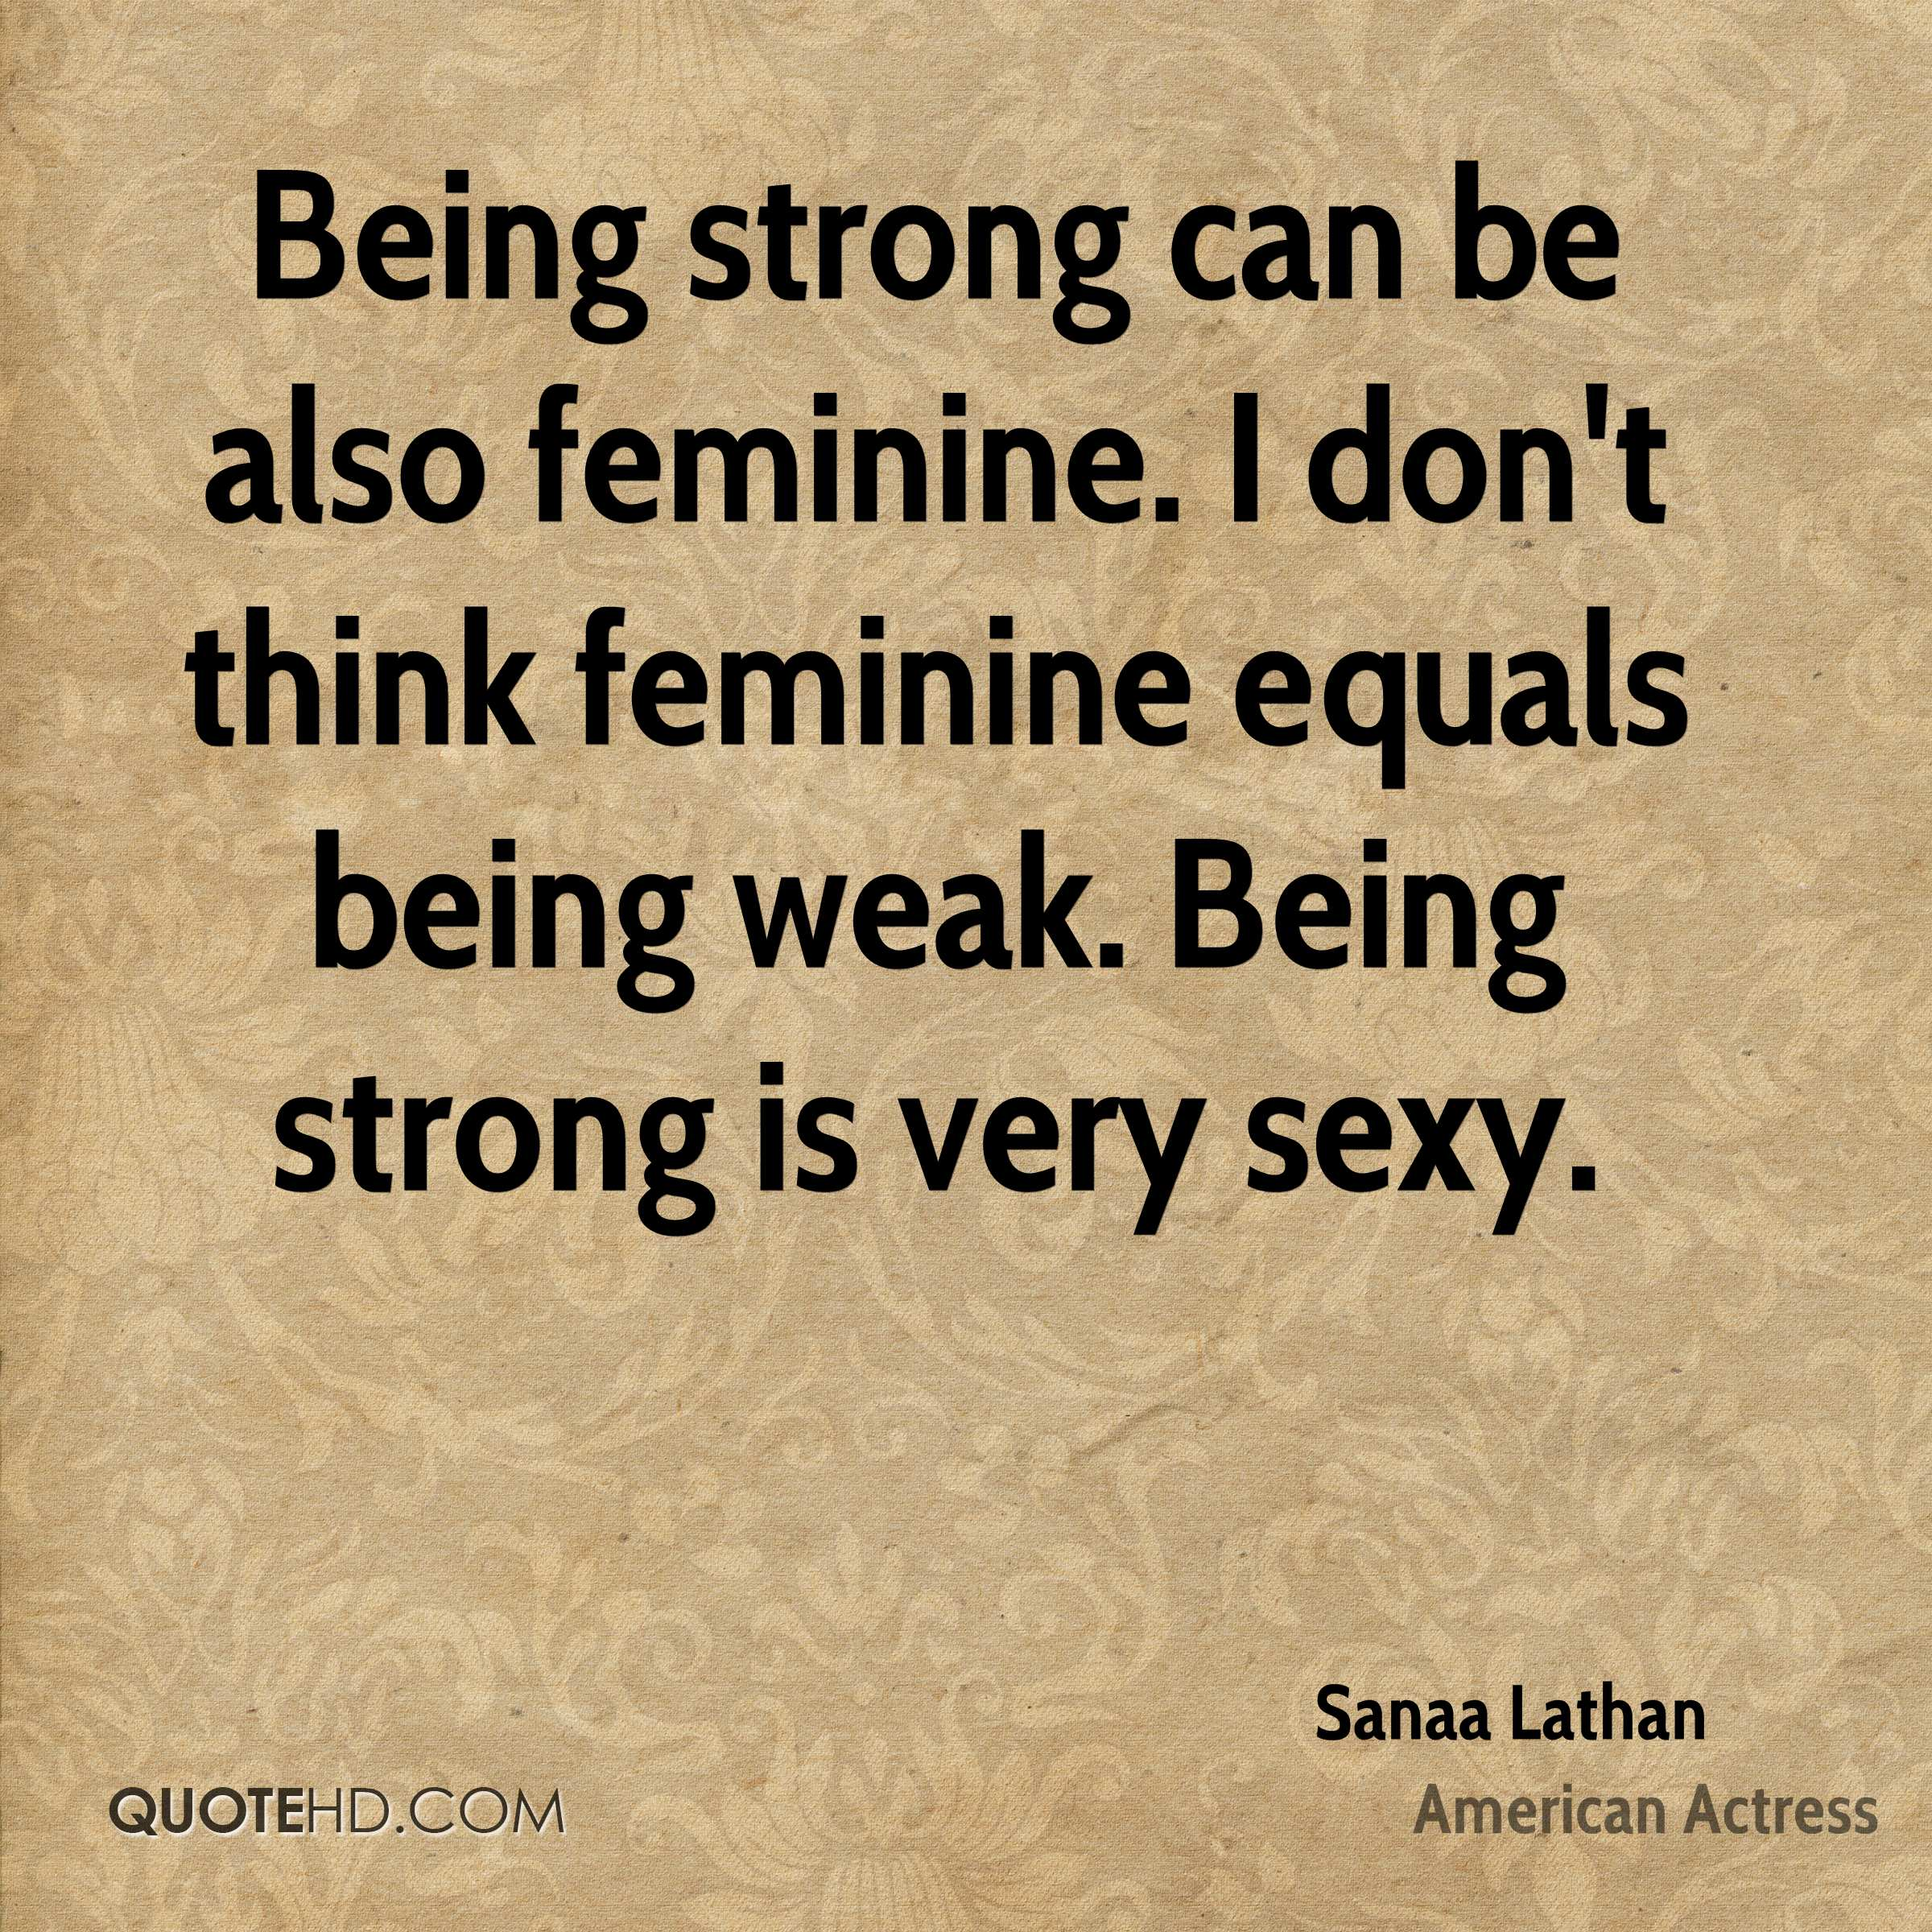 Quotes On Being Strong Sanaa Lathan Quotes  Quotehd